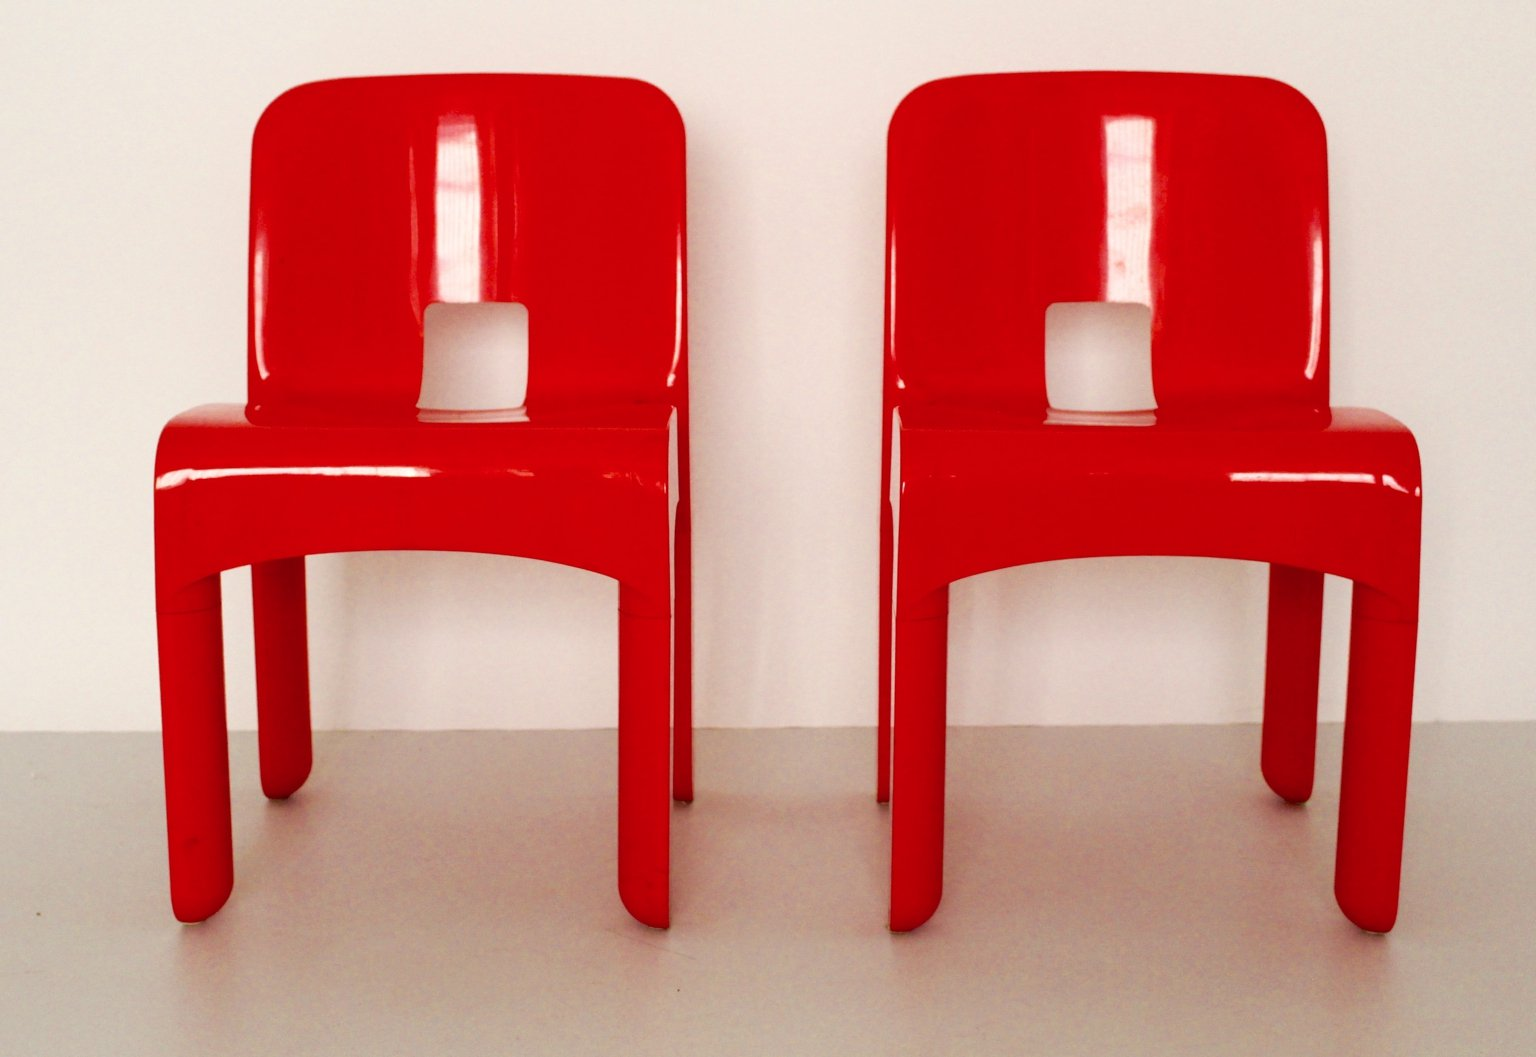 model 4860 universale plastic chairs by joe colombo for kartell 1960s set of 2 for sale at pamono. Black Bedroom Furniture Sets. Home Design Ideas